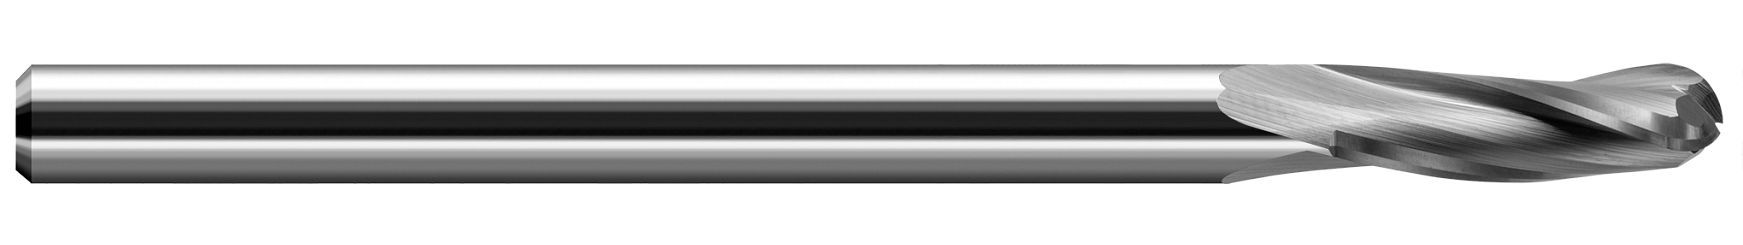 End Mills for Plastics - Finishers - Ball Upcut - 3 Flute - Slow Helix